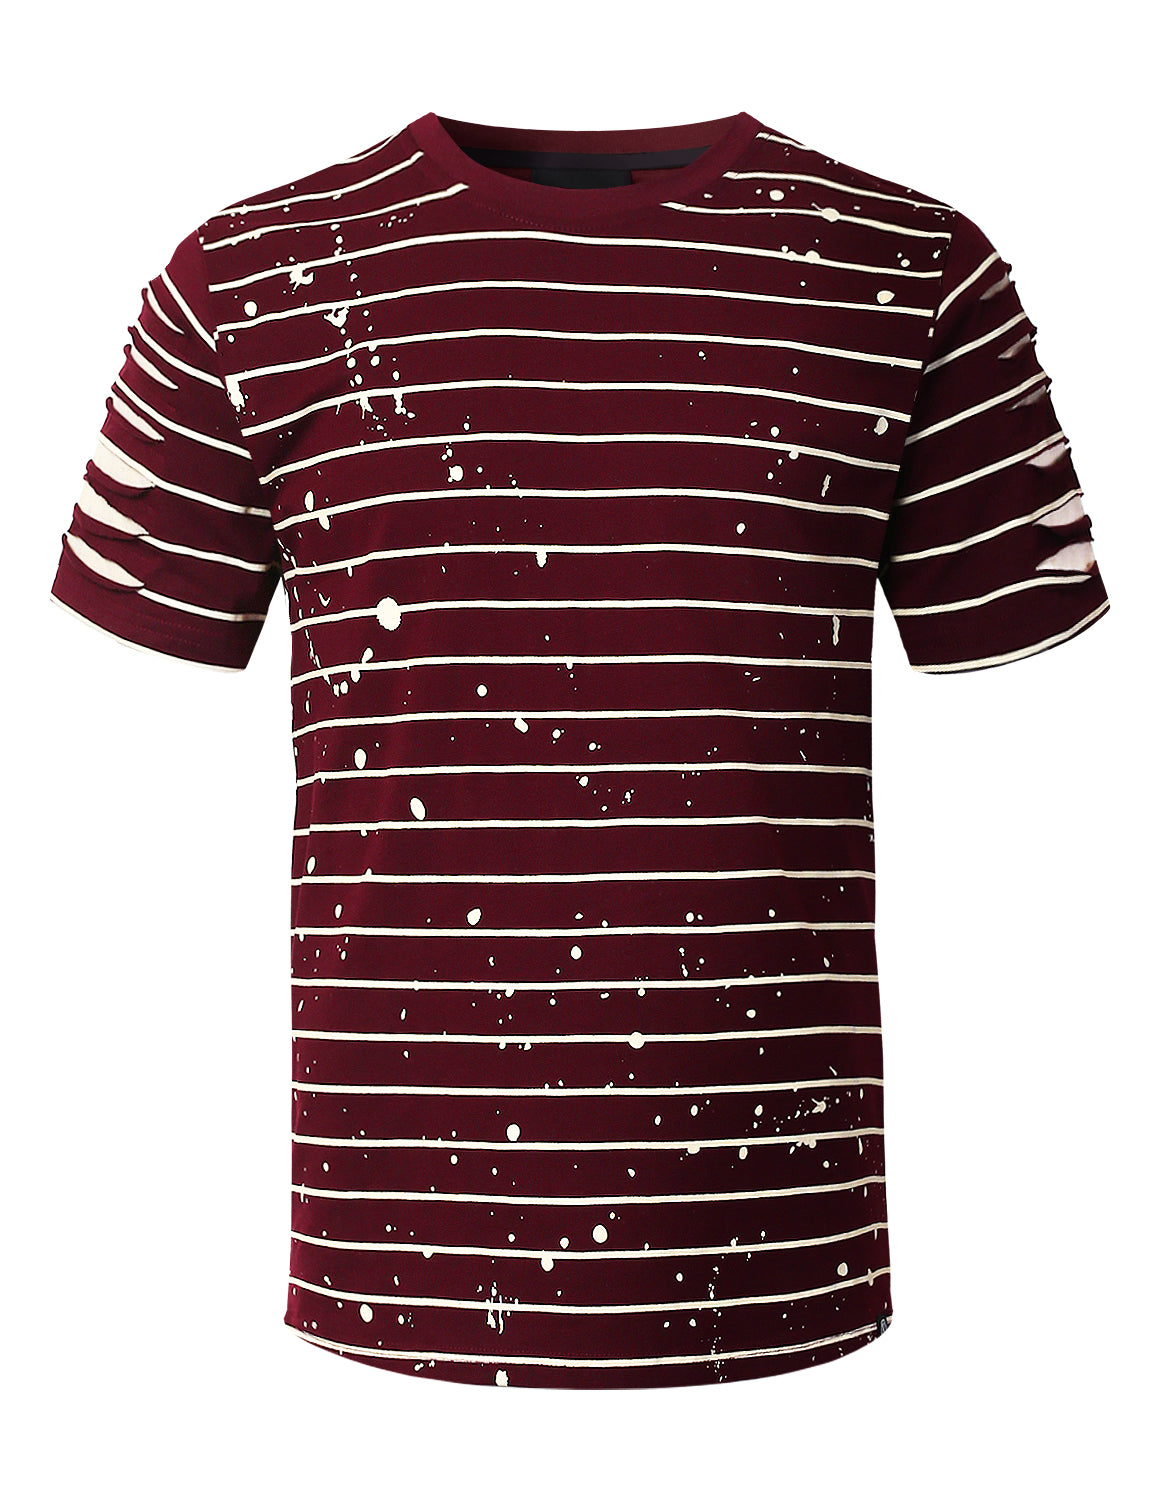 BURGUNDY Splatter Striped T-shirt - URBANCREWS